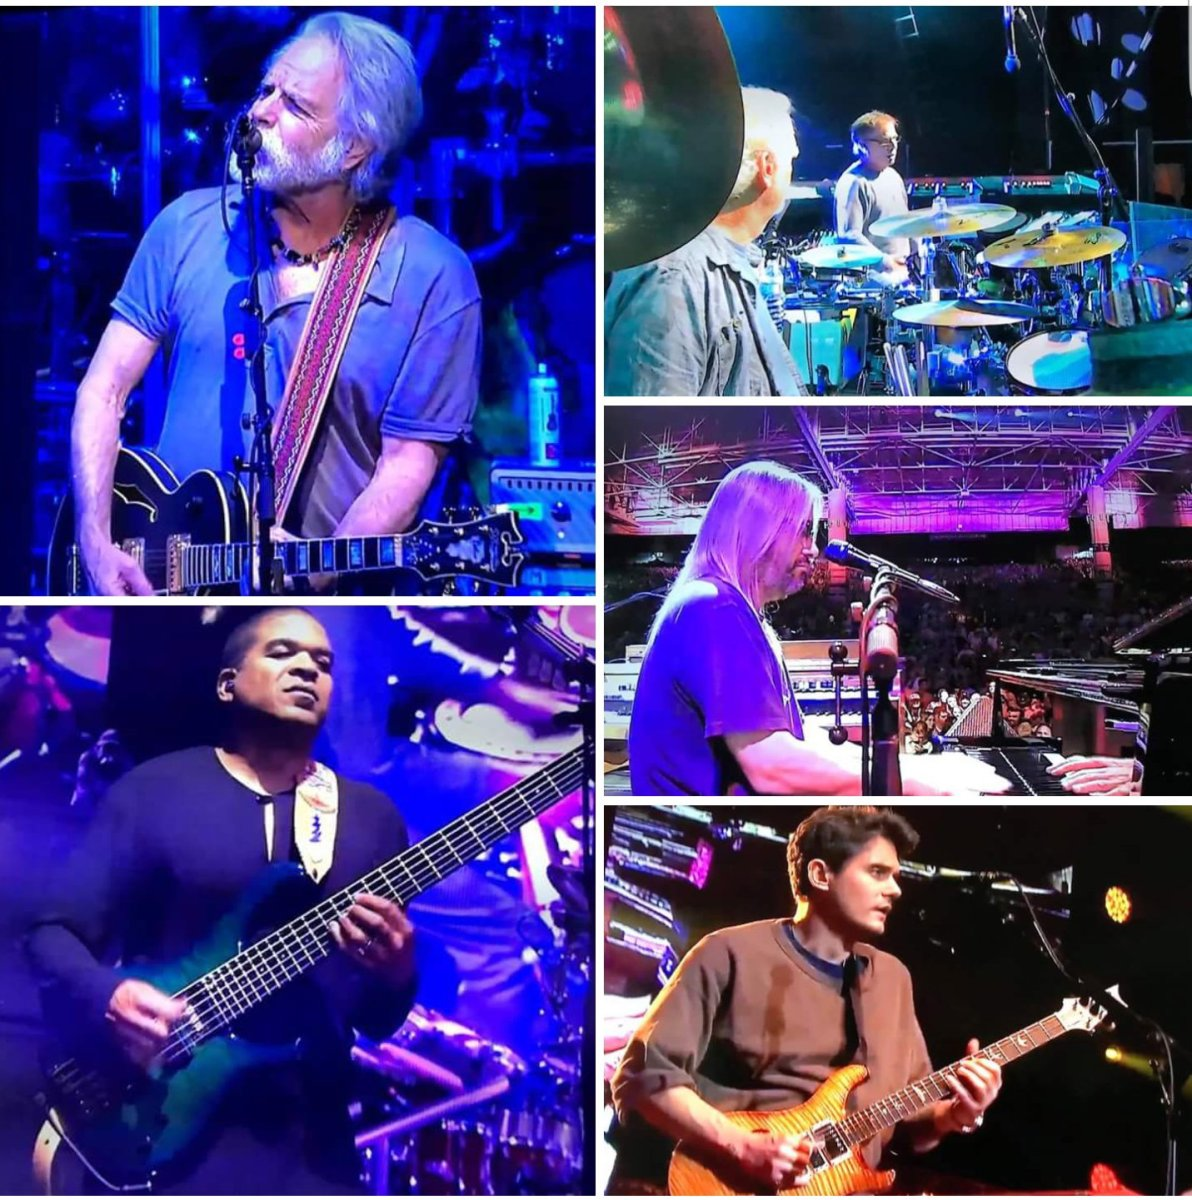 UPDATED! SETLIST & VIDEO: Dead & Company Summer Tour Began Tonight! Mansfield MA May 30, 2018